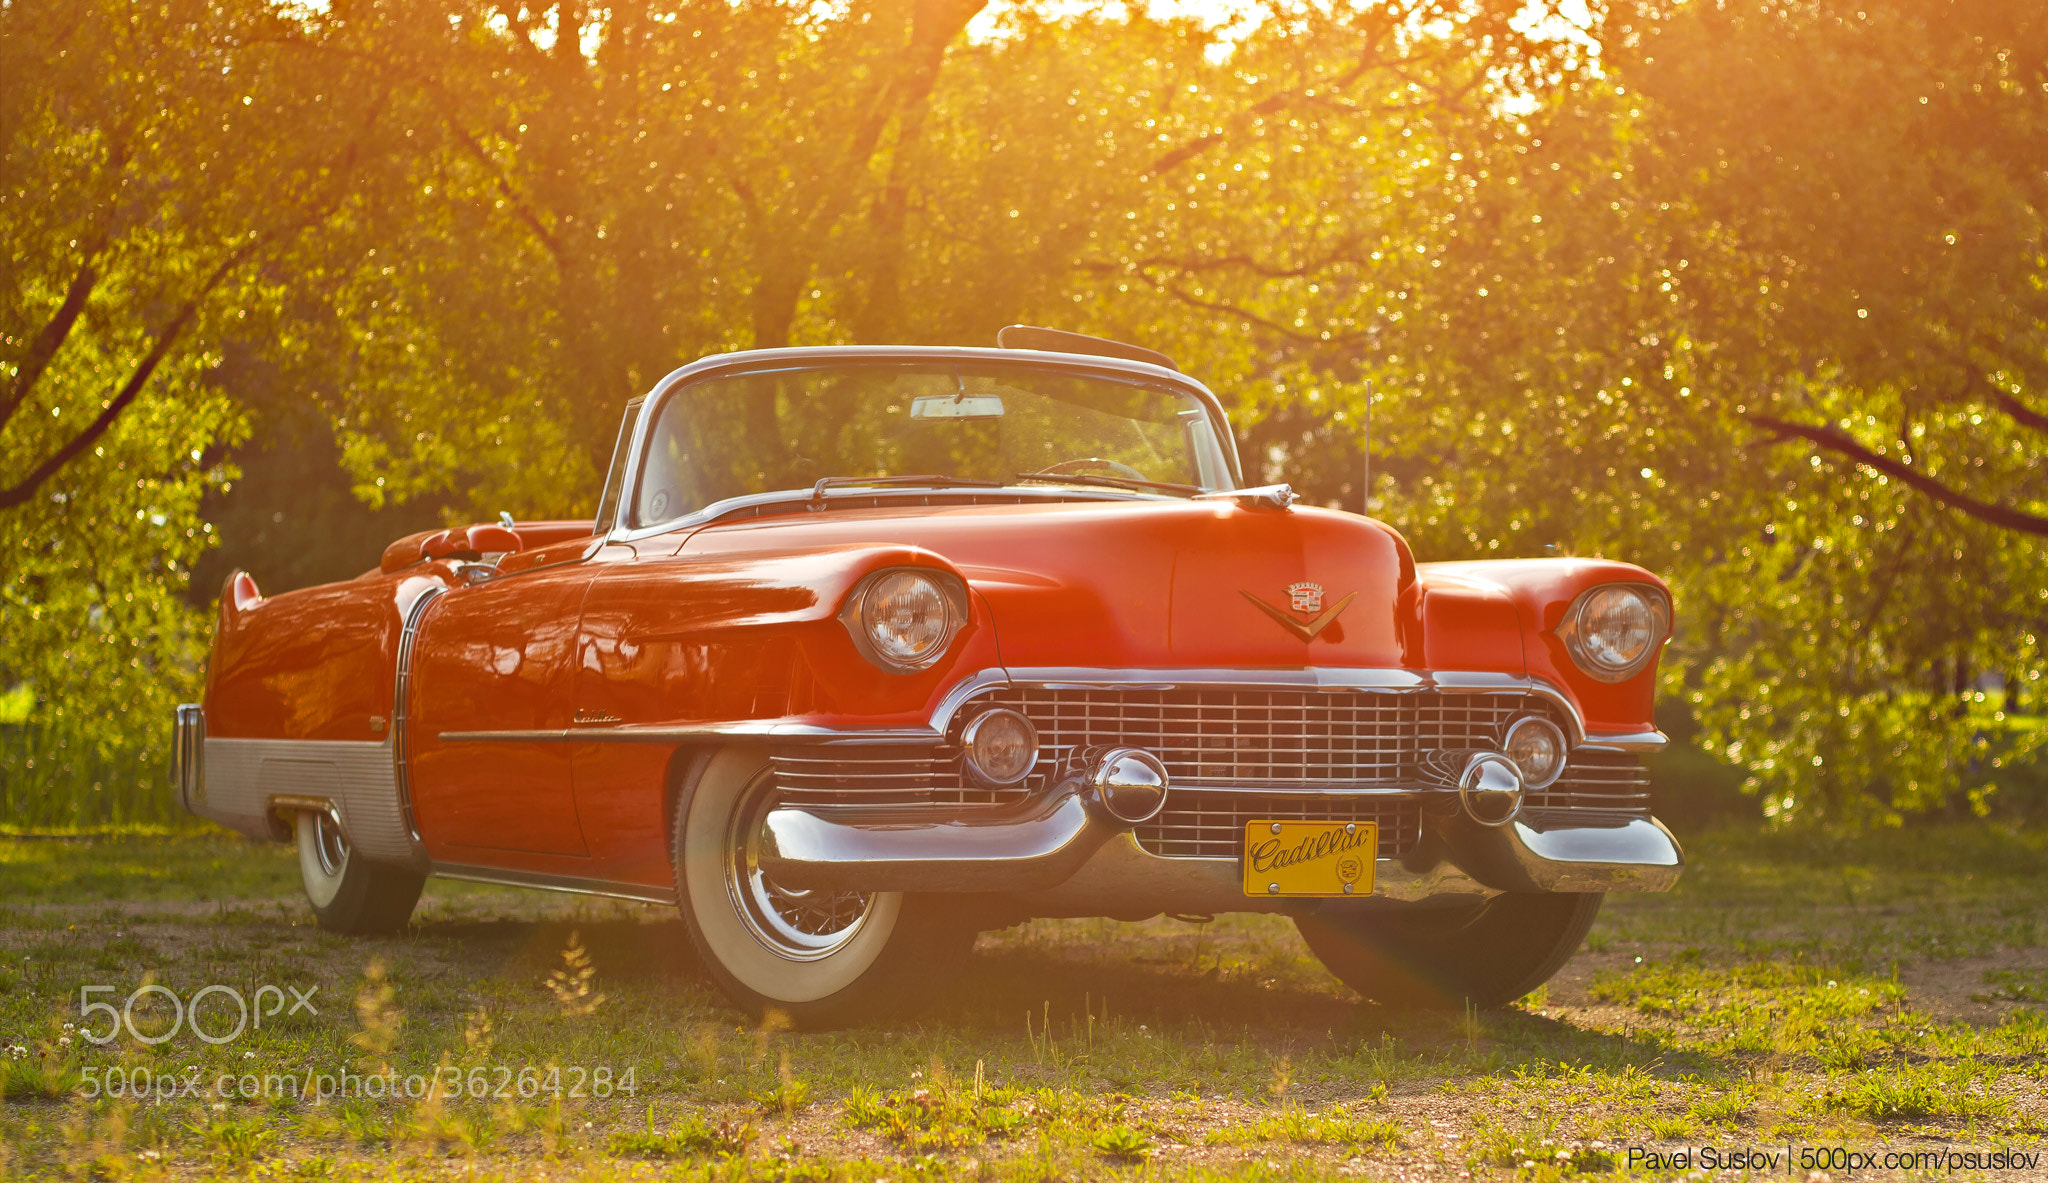 Photograph Cadillac Eldorado 1954 by Pavel Suslov on 500px